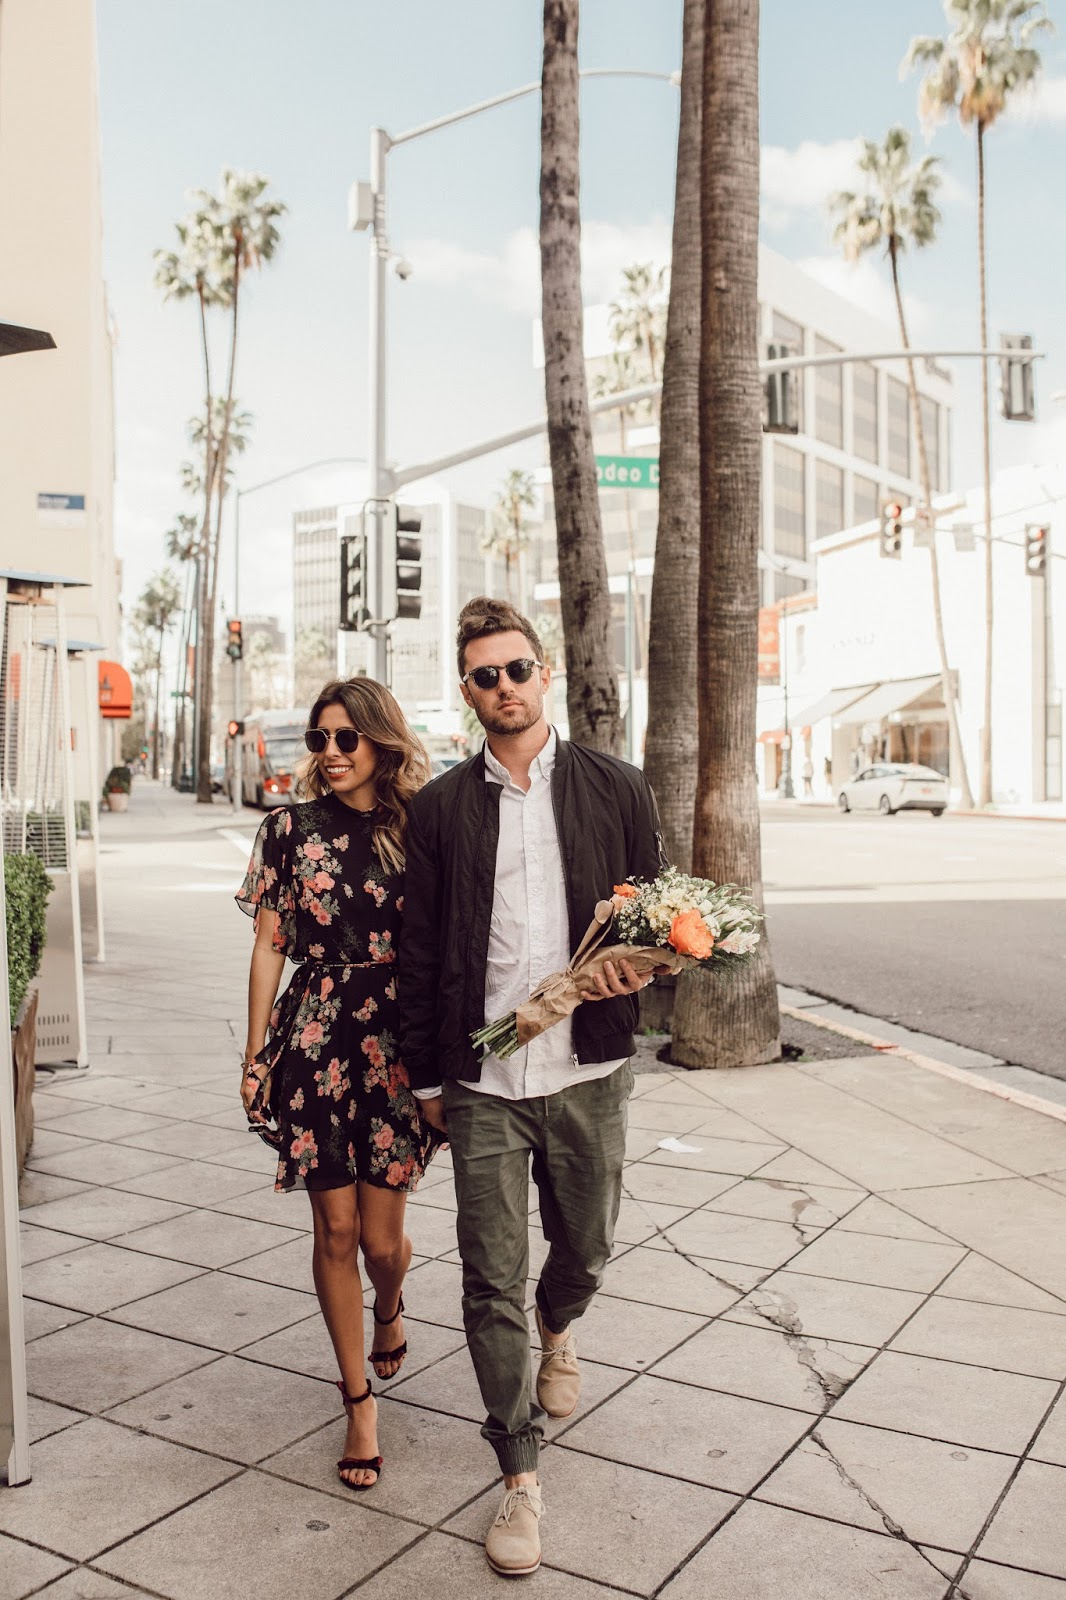 rodeo drive date night, beverly wilshire, valentine's day ideas, everyday pursuits boyfriend, couples outfit ideas